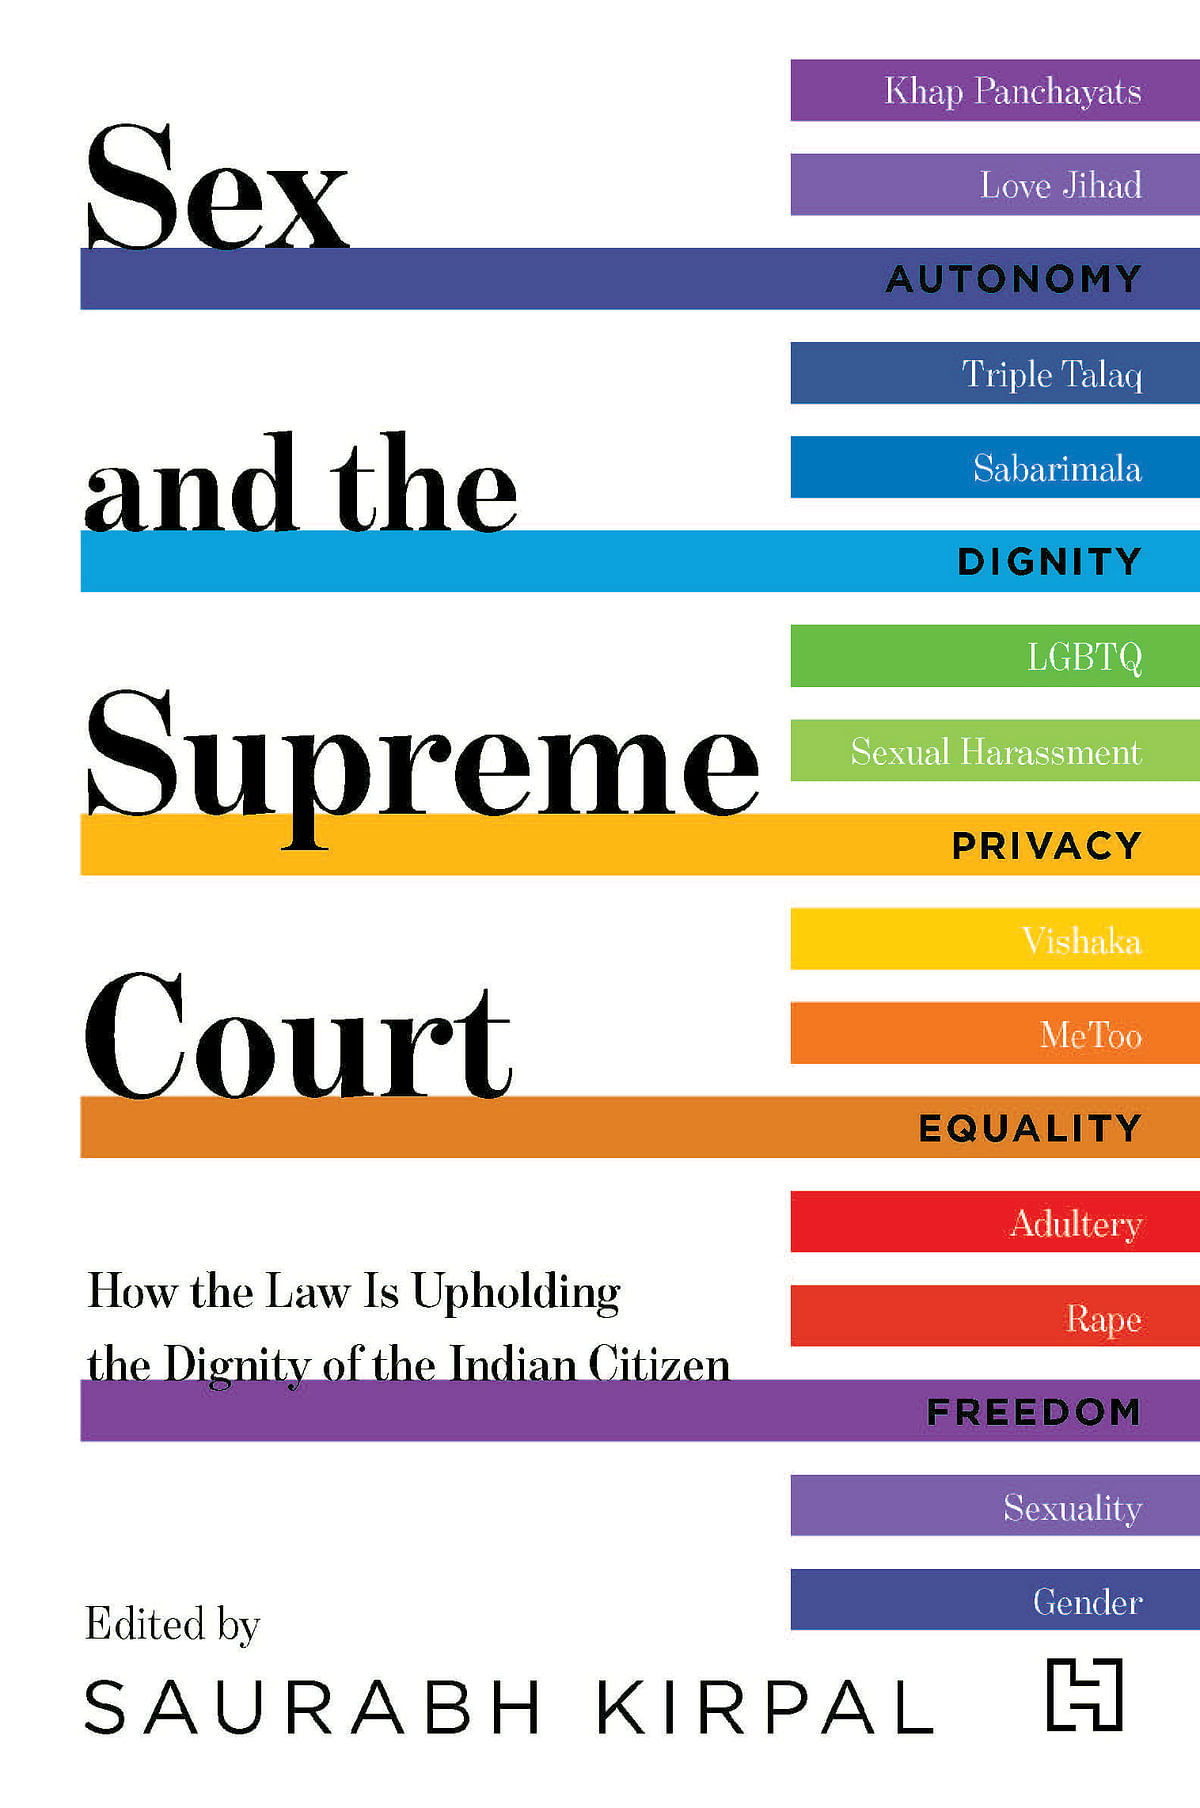 Book cover for 'Sex and The Supreme Court'.